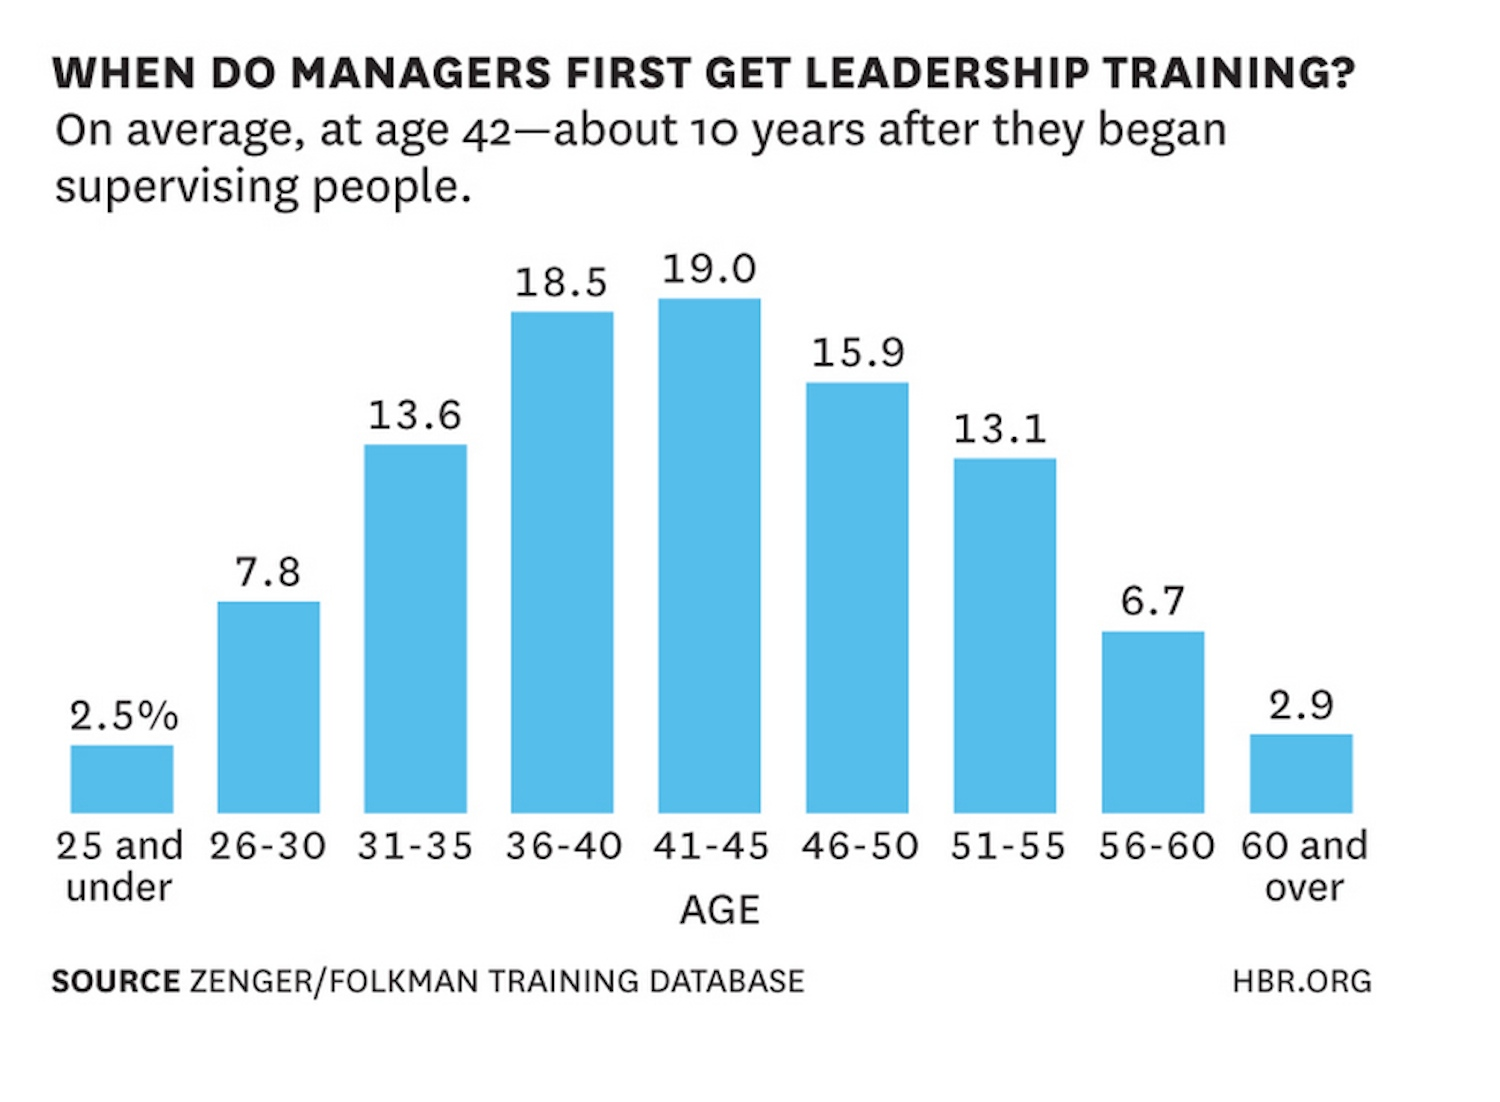 Communication on this topic: How to Get Management Training, how-to-get-management-training/